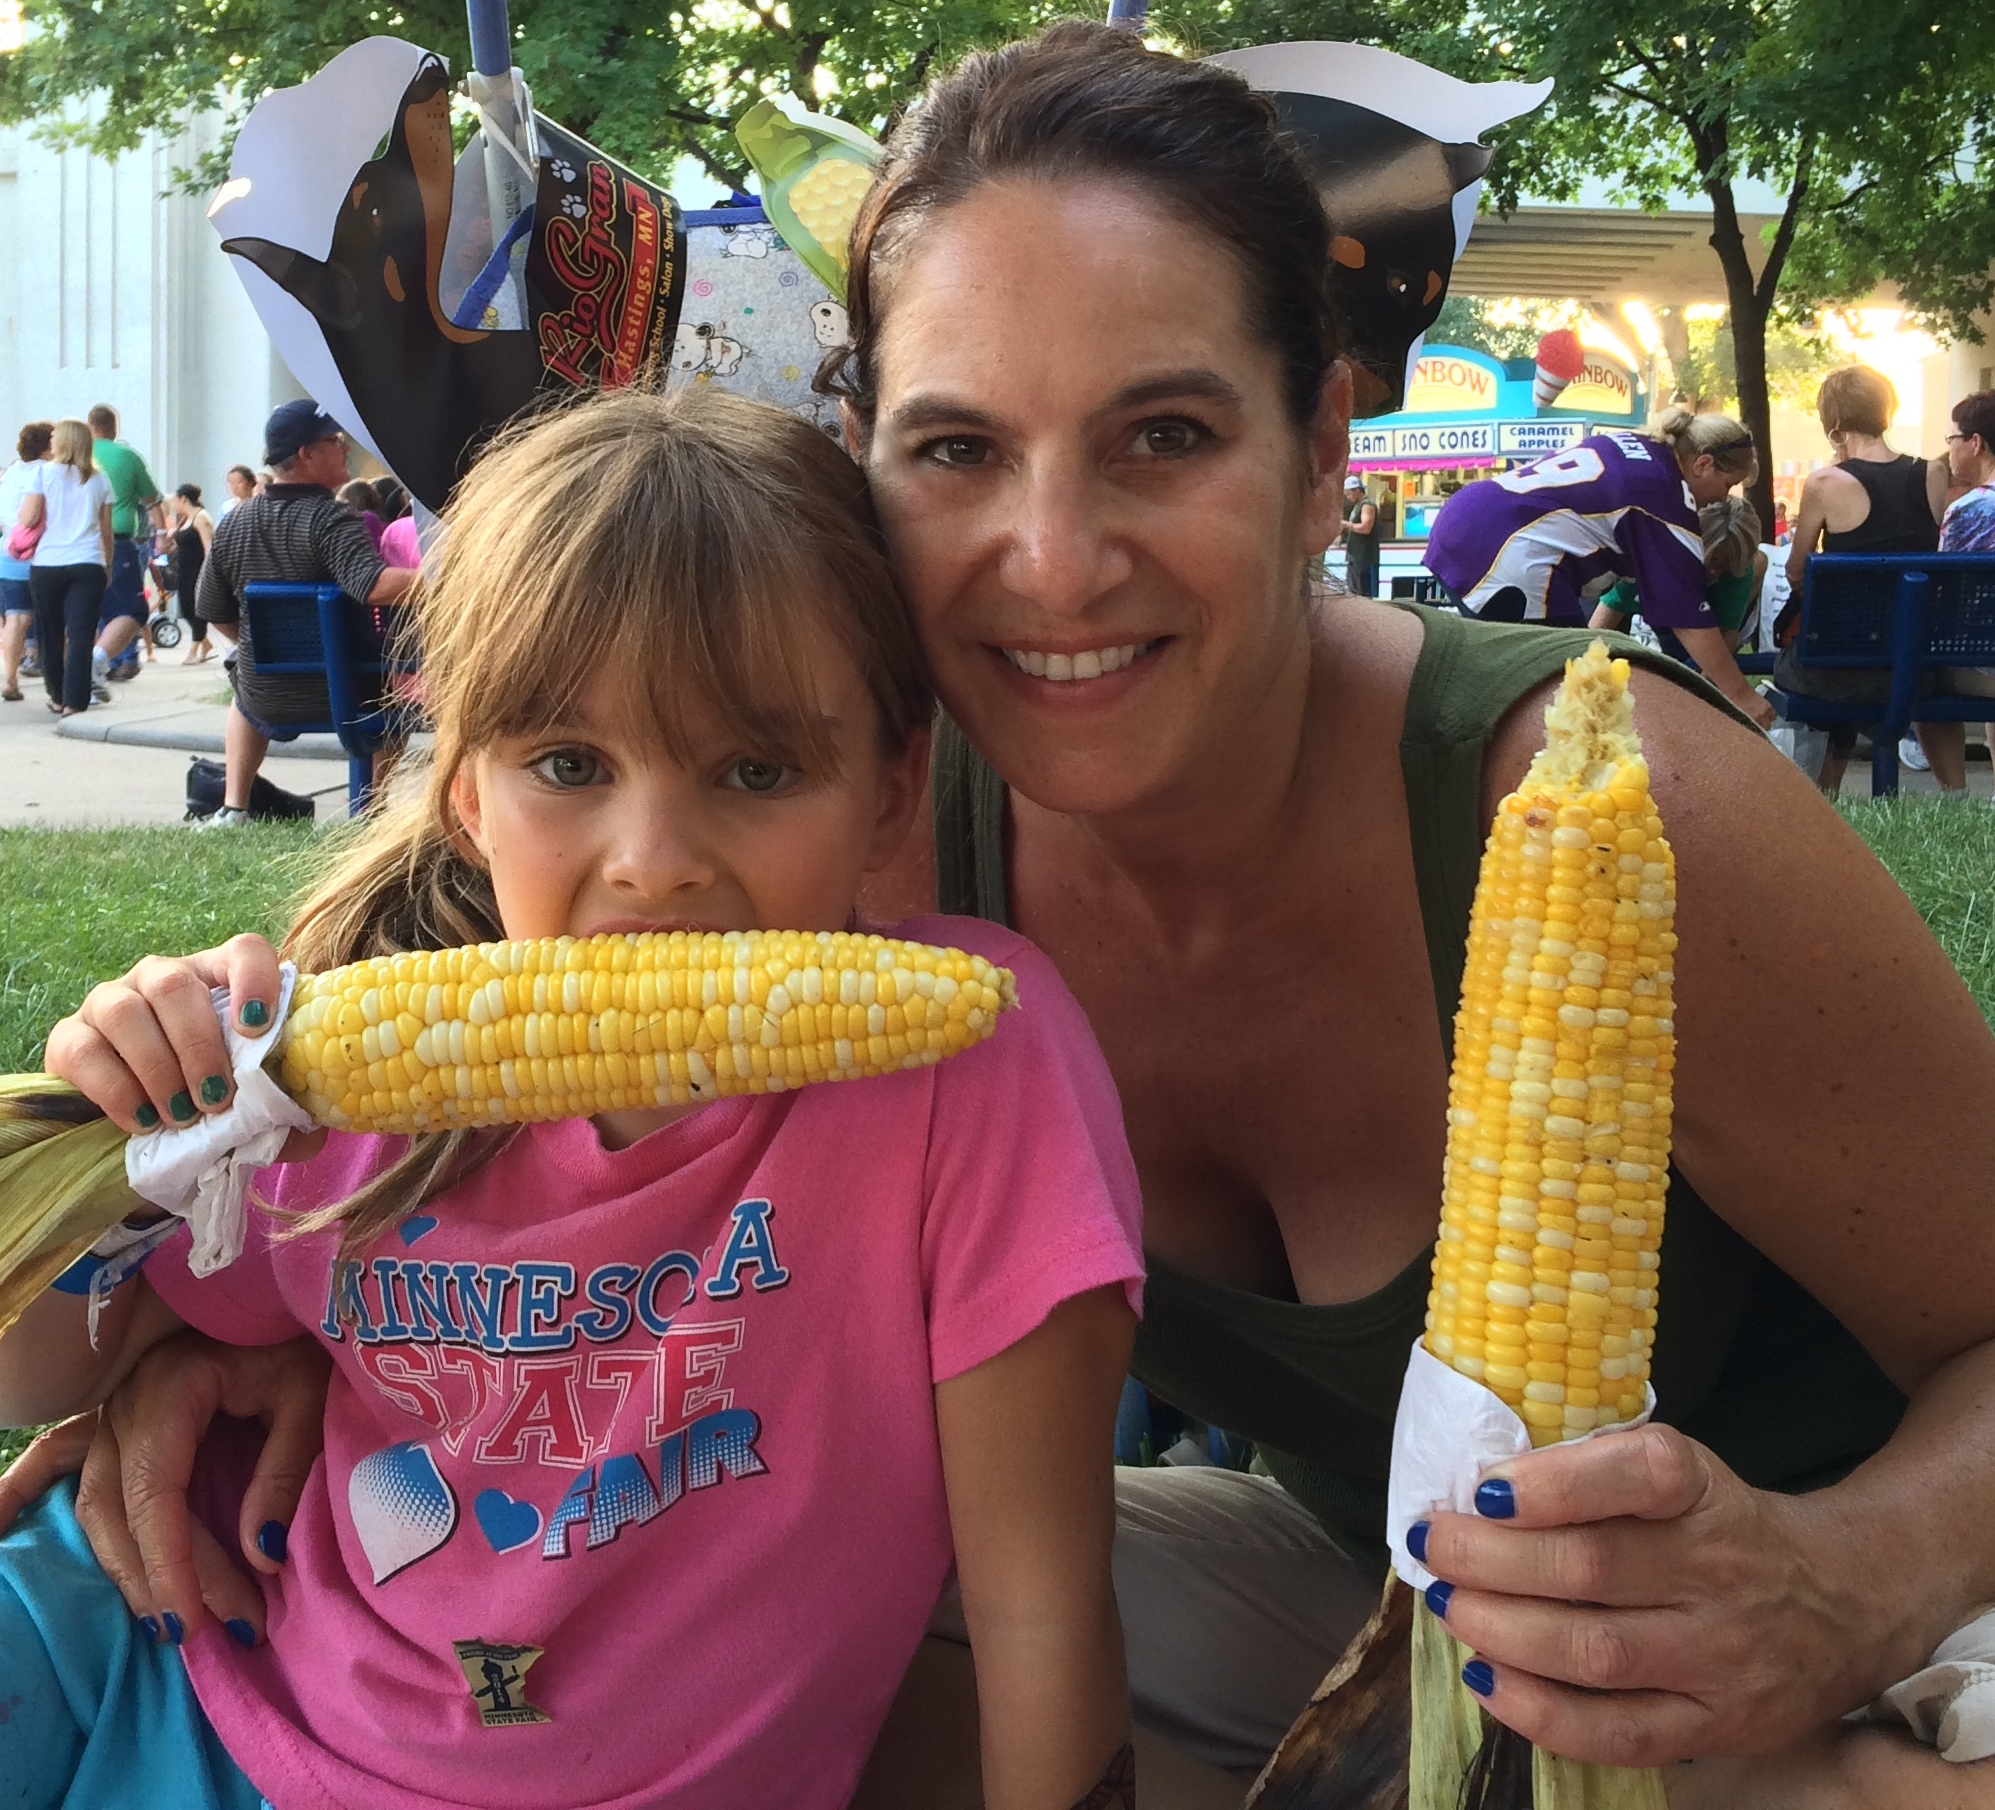 Writer Alex Lodner with her young daughter Millie, Millie's eating corn while Alex is holding a cob and smiling. Lots of people and bright fair vendor booths are behind them.